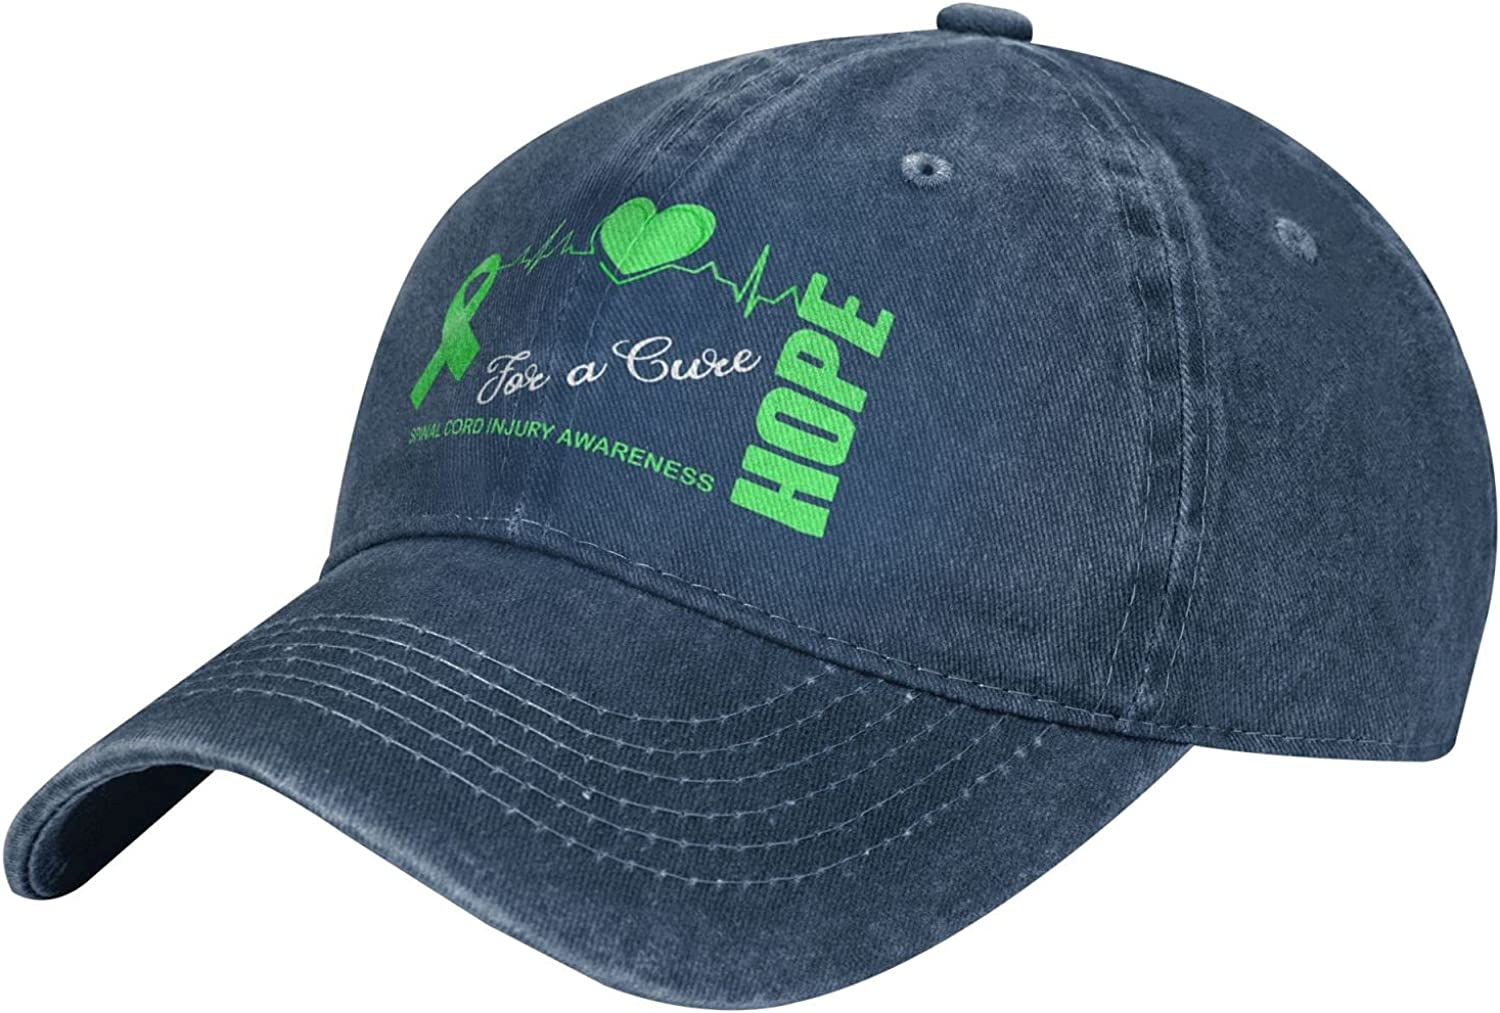 Hope for A Cure Spinal Cord Injury Awareness Adult Cowboy Hats Outdoor Activities Breathable Baseball Cap Men Women